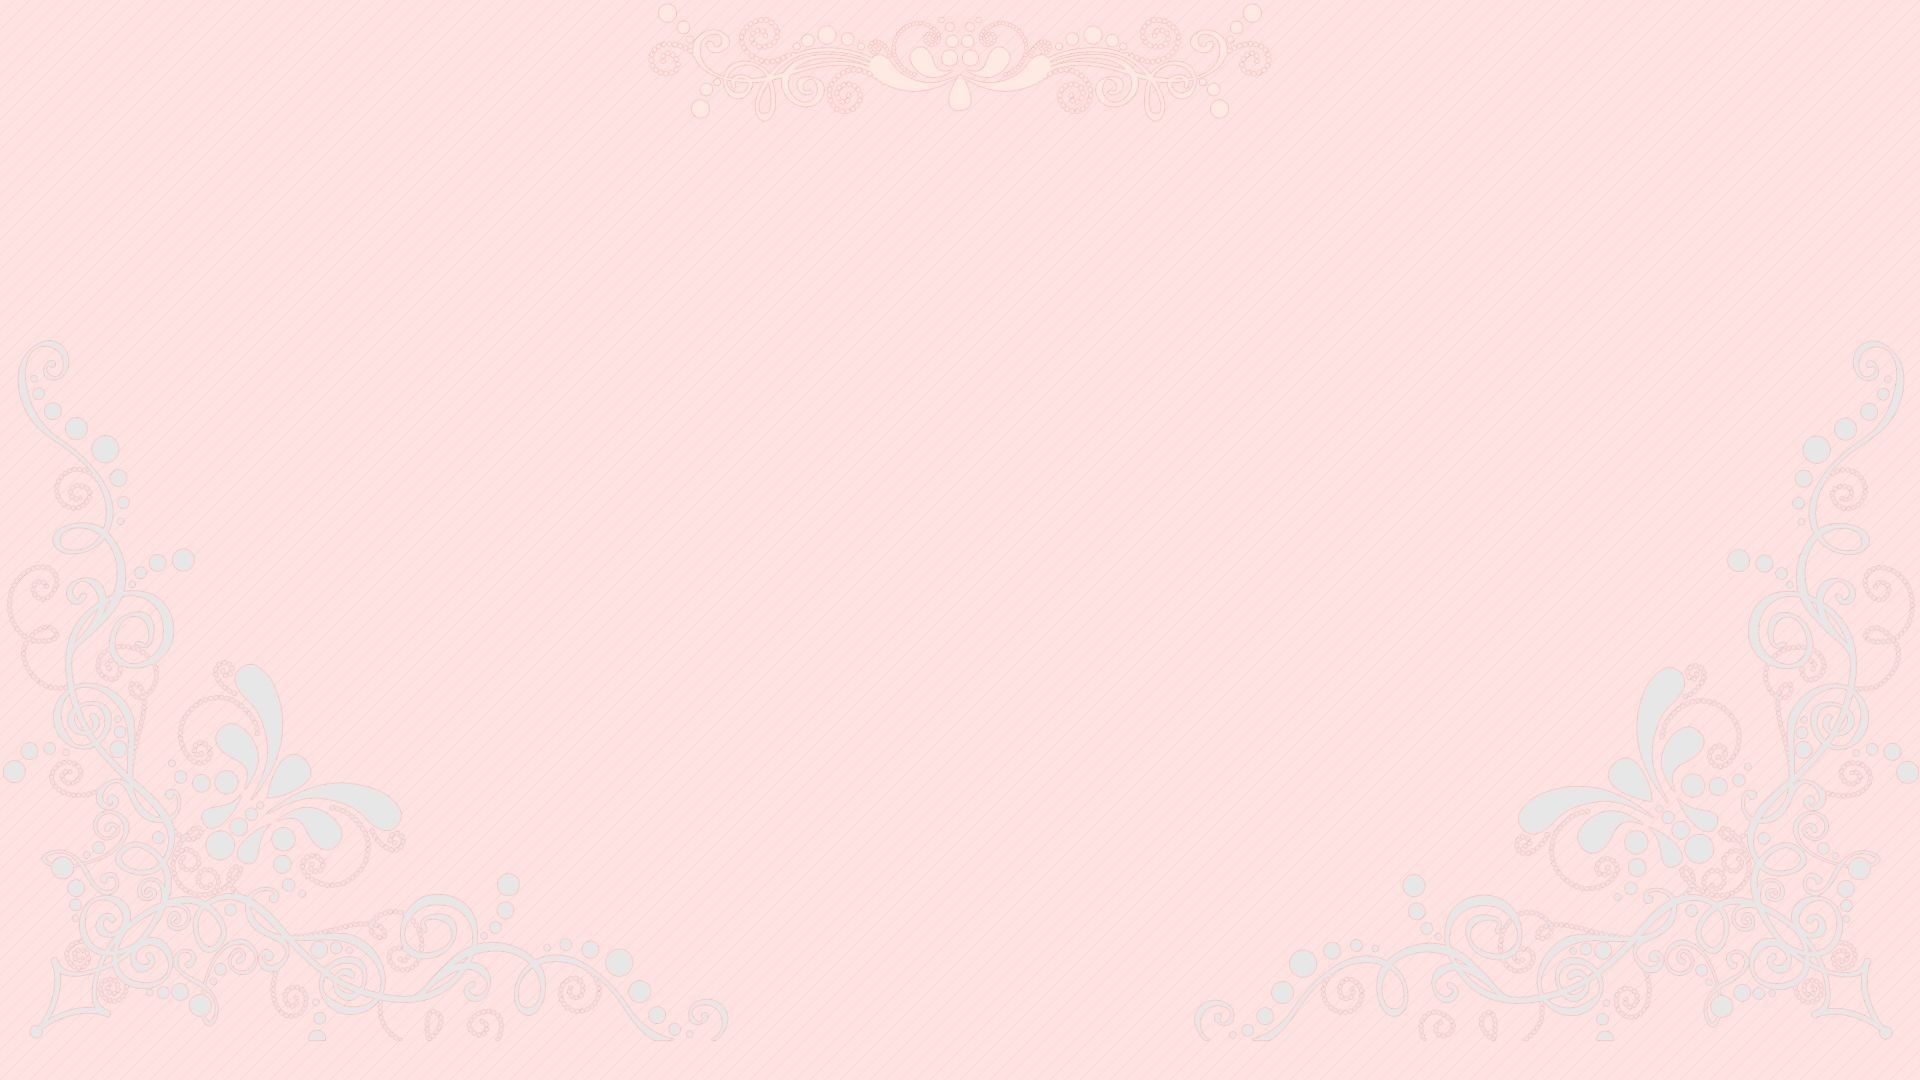 Pastel Aesthetic Laptop Wallpapers 3 Quotes Find and follow posts tagged pastel pink aesthetic on tumblr. pastel aesthetic laptop wallpapers 3